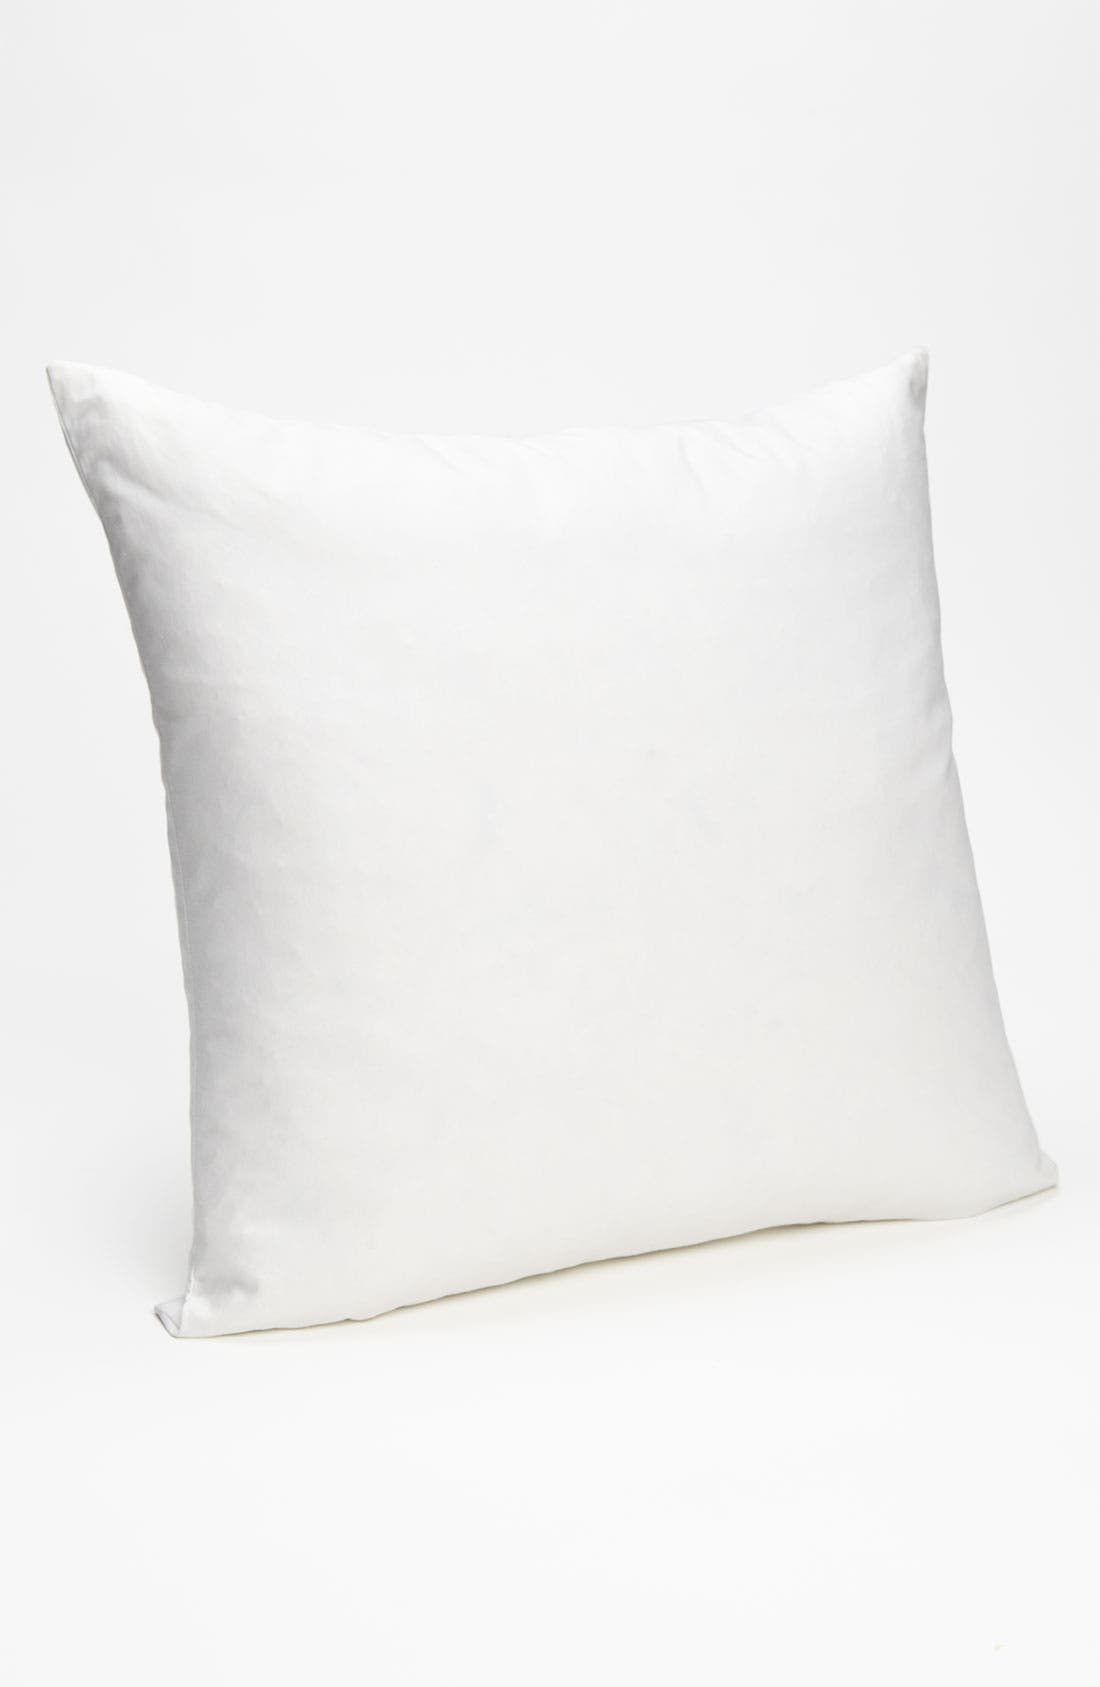 Main Image - Nordstrom at Home 20x20 Feather & Down Pillow Insert (2 for $26)